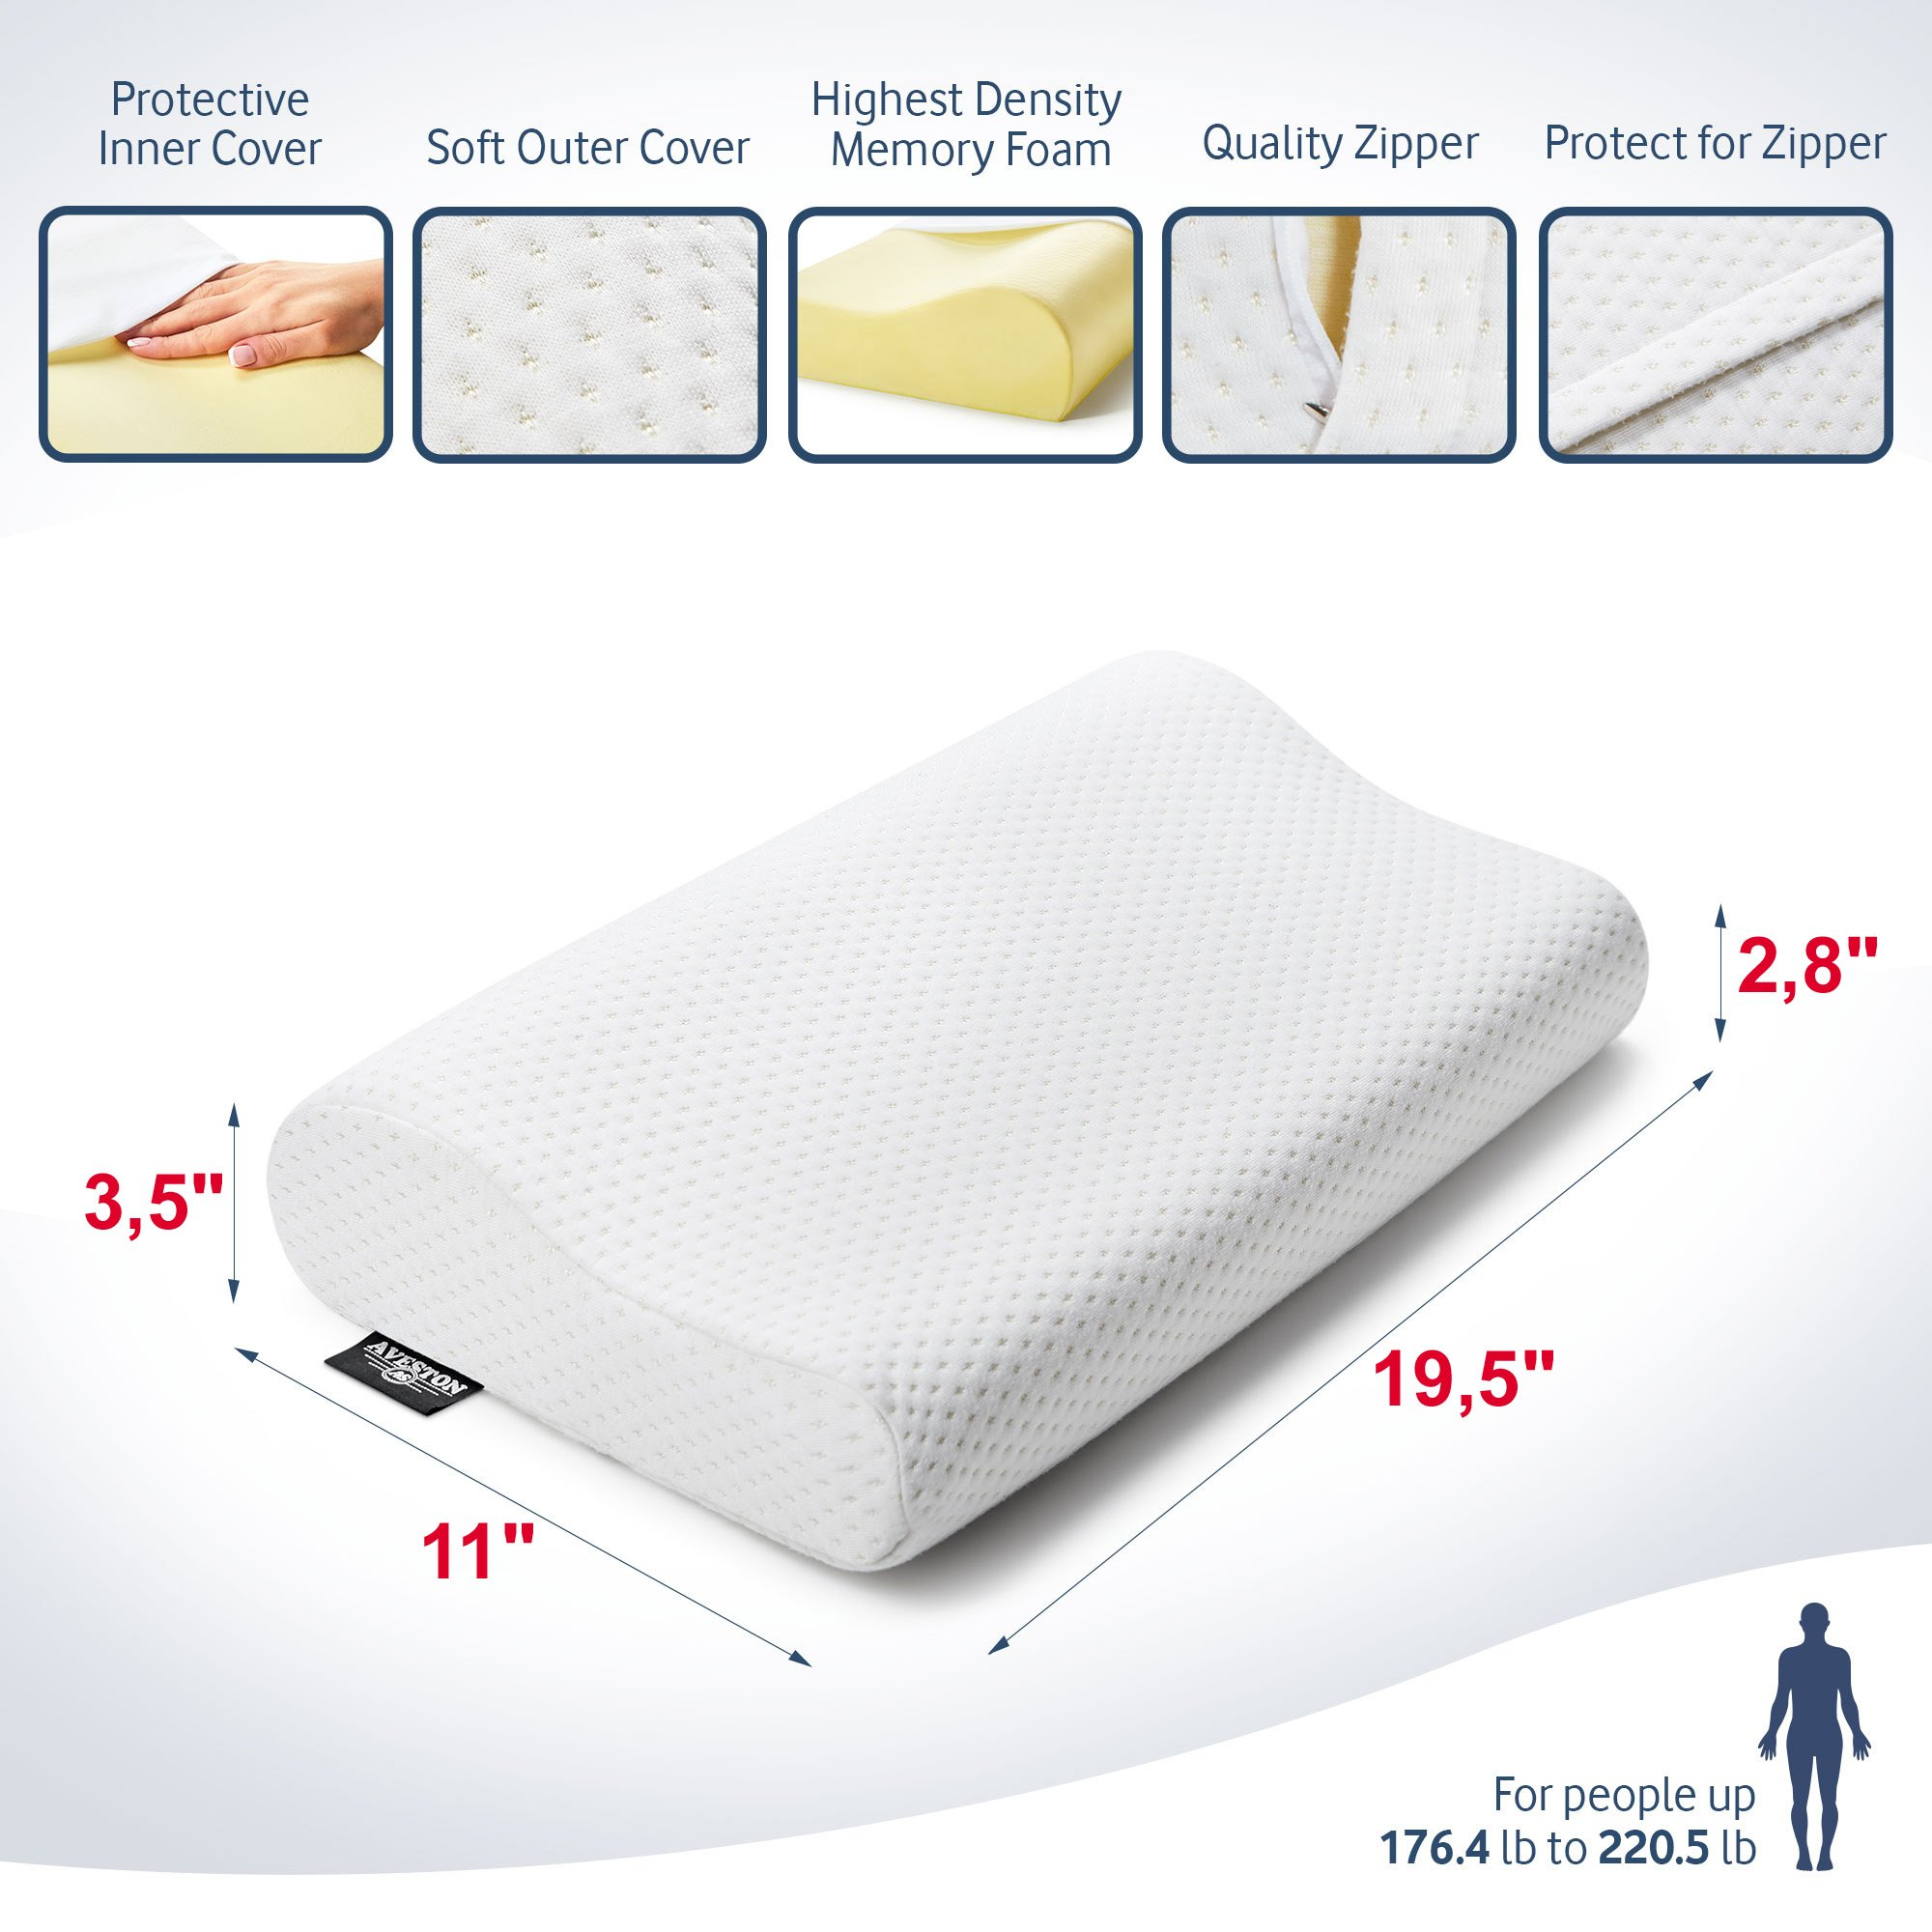 AVESTON Contour Memory Foam Chiropractor Pillow - Small Comfortable Orthopedic Support Pillow for Shoulder Pain and Neck Pain Relief with 1 Soft Removable Covers (19.5 x 11 in)